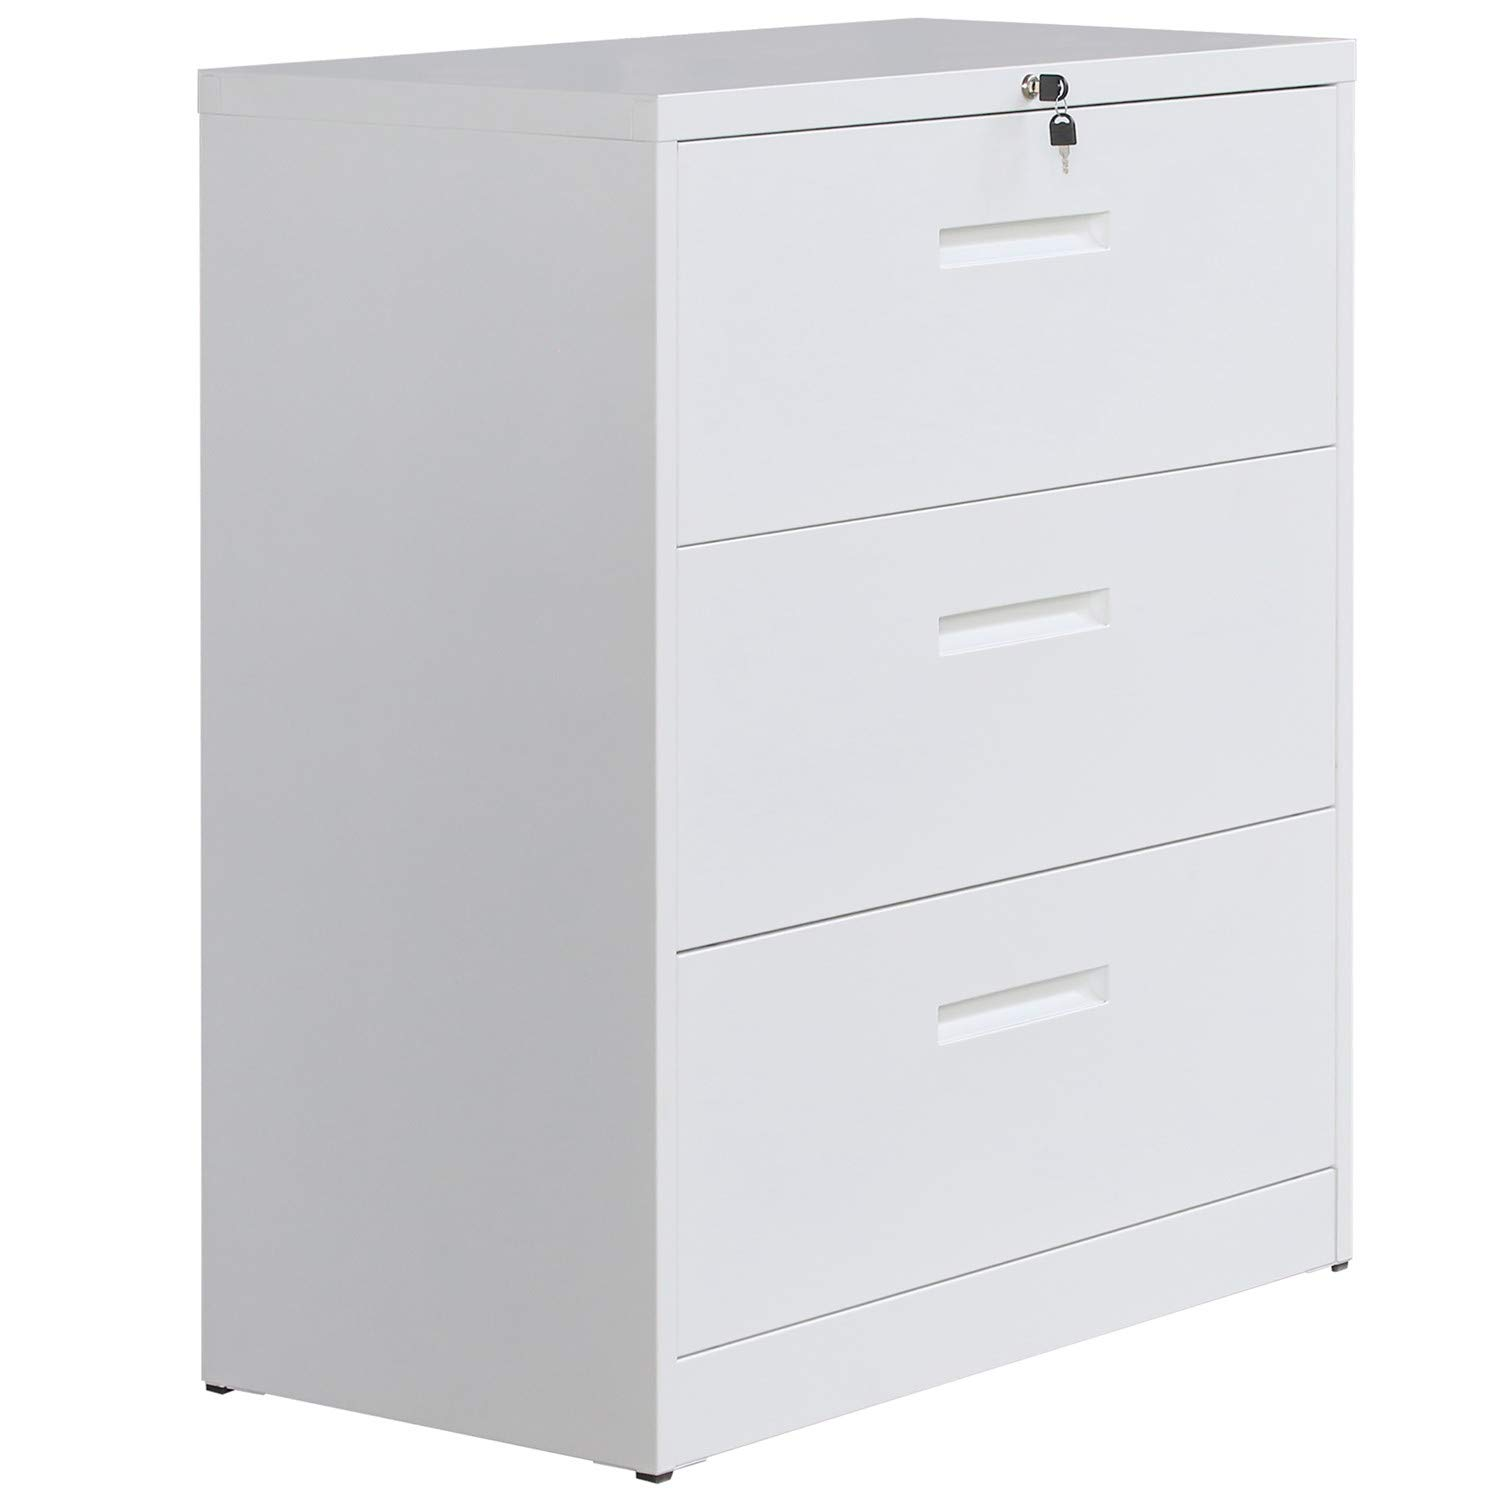 File Cabinet with Lock Lateral File Cabinet Metal Heavy Duty 3 Drawer Office Cabinet (White) by Retrohom